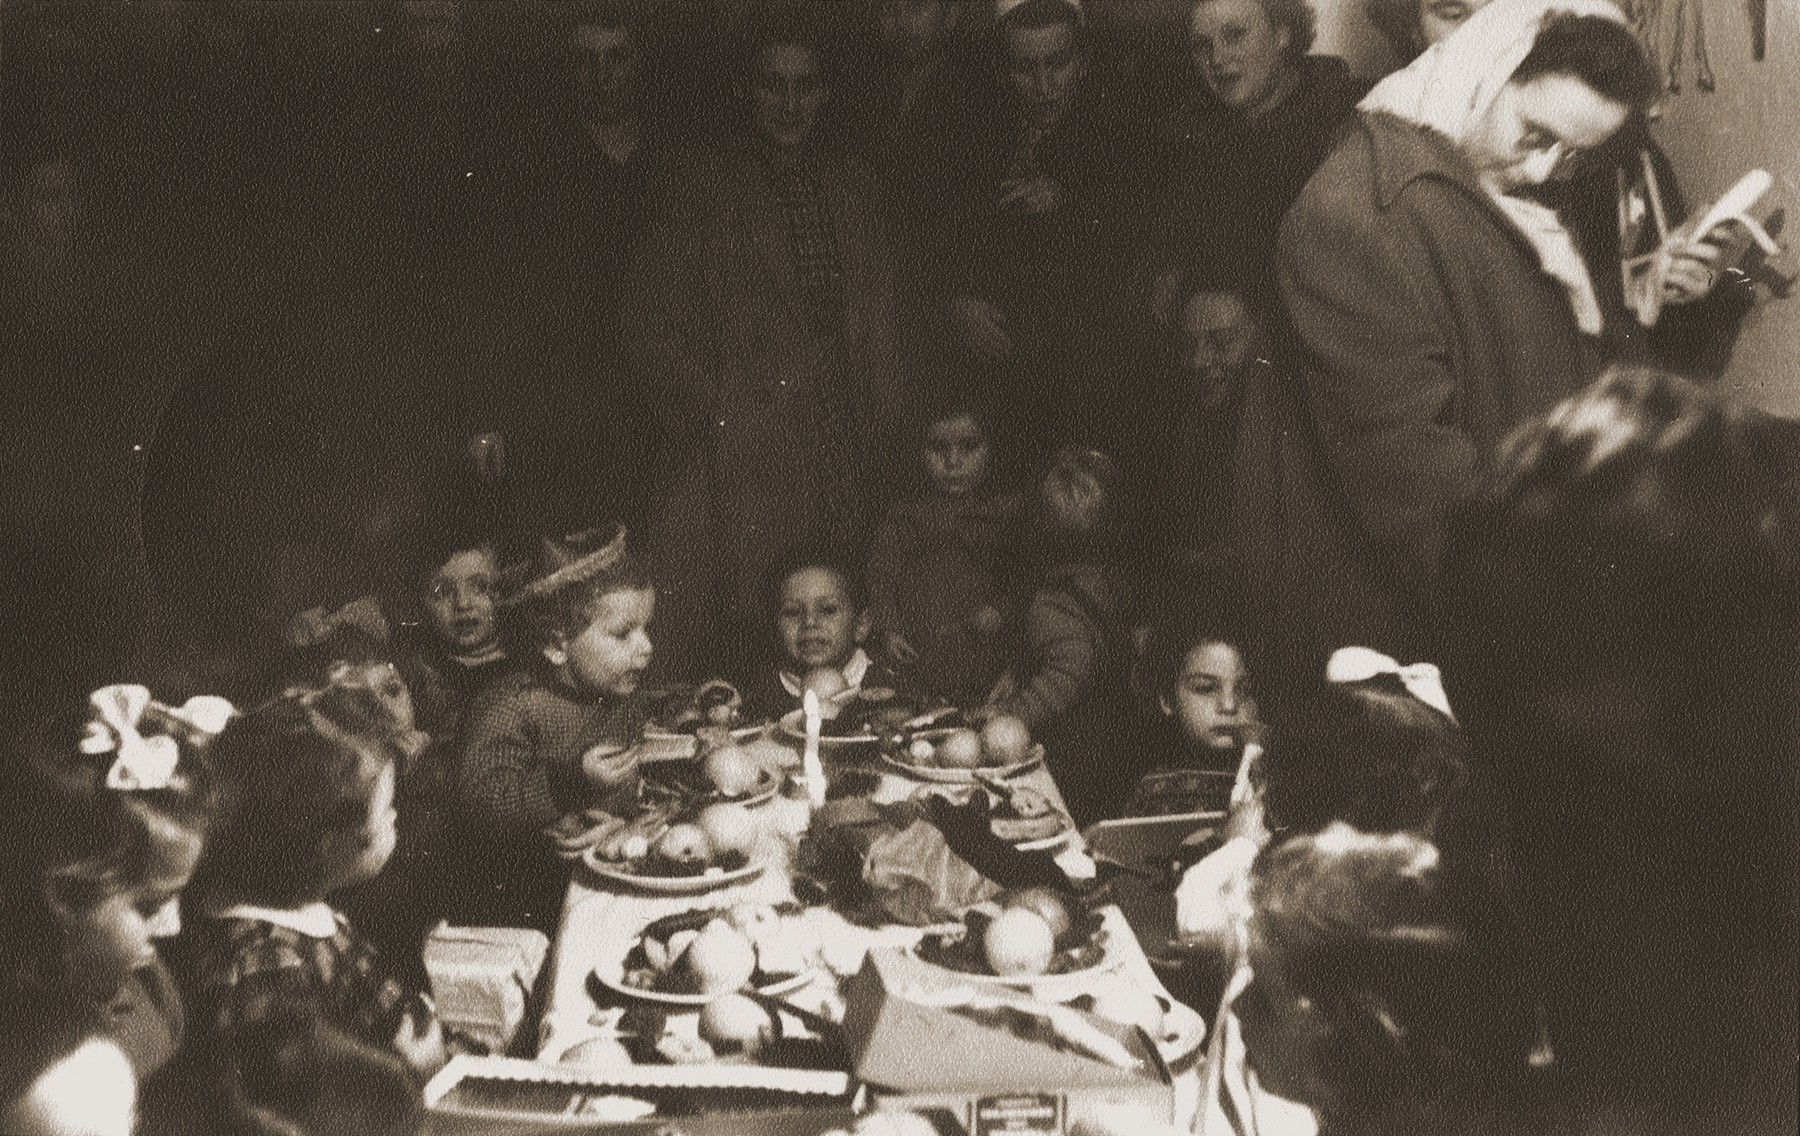 Pre-school children who were born in  the Bergen-Belsen displaced persons' camp, attend a birthday party at the camp.